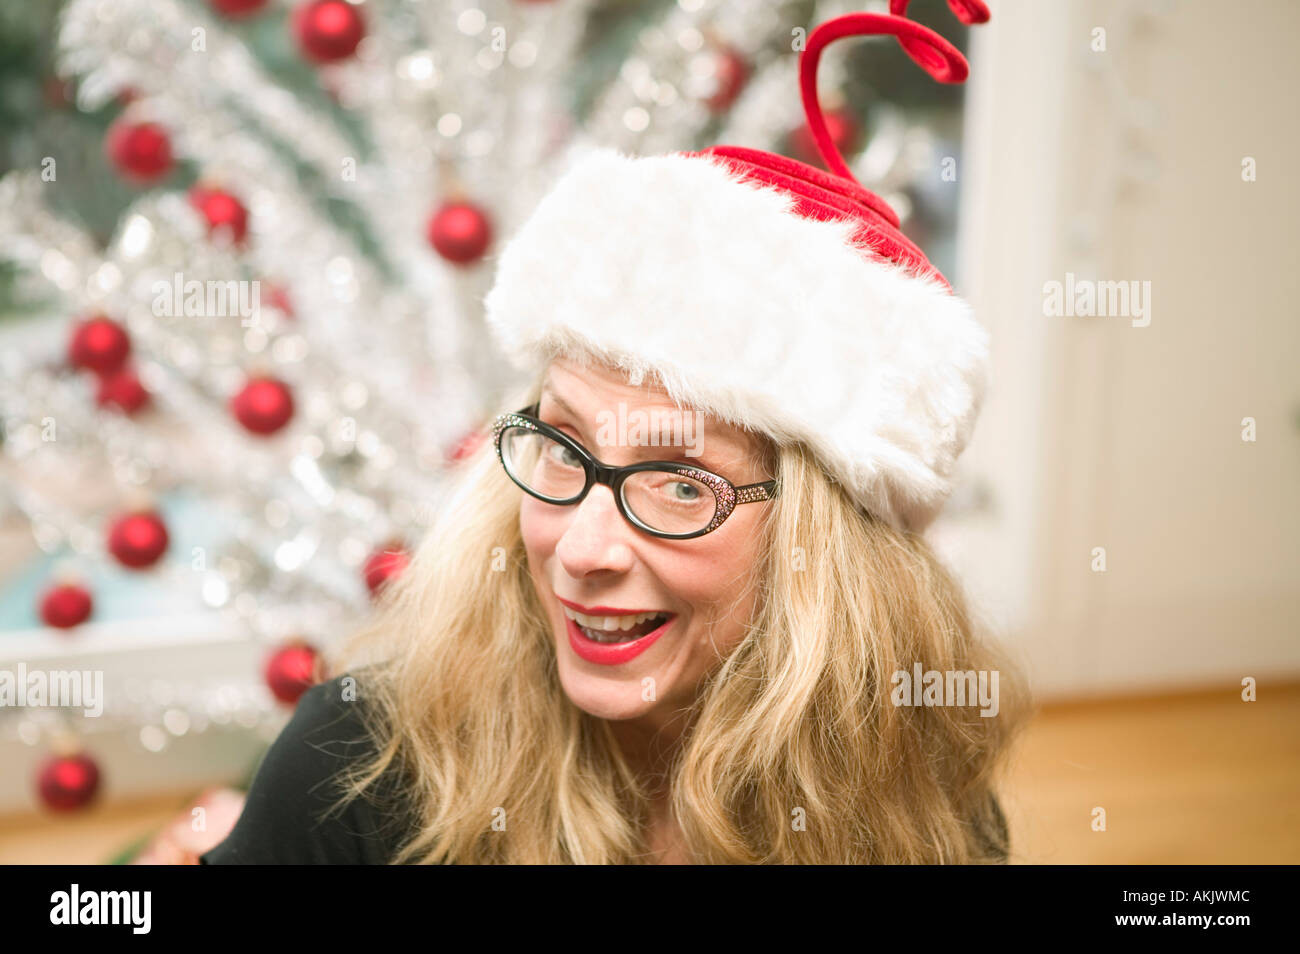 Portrait of playful woman at Christmastime - Stock Image